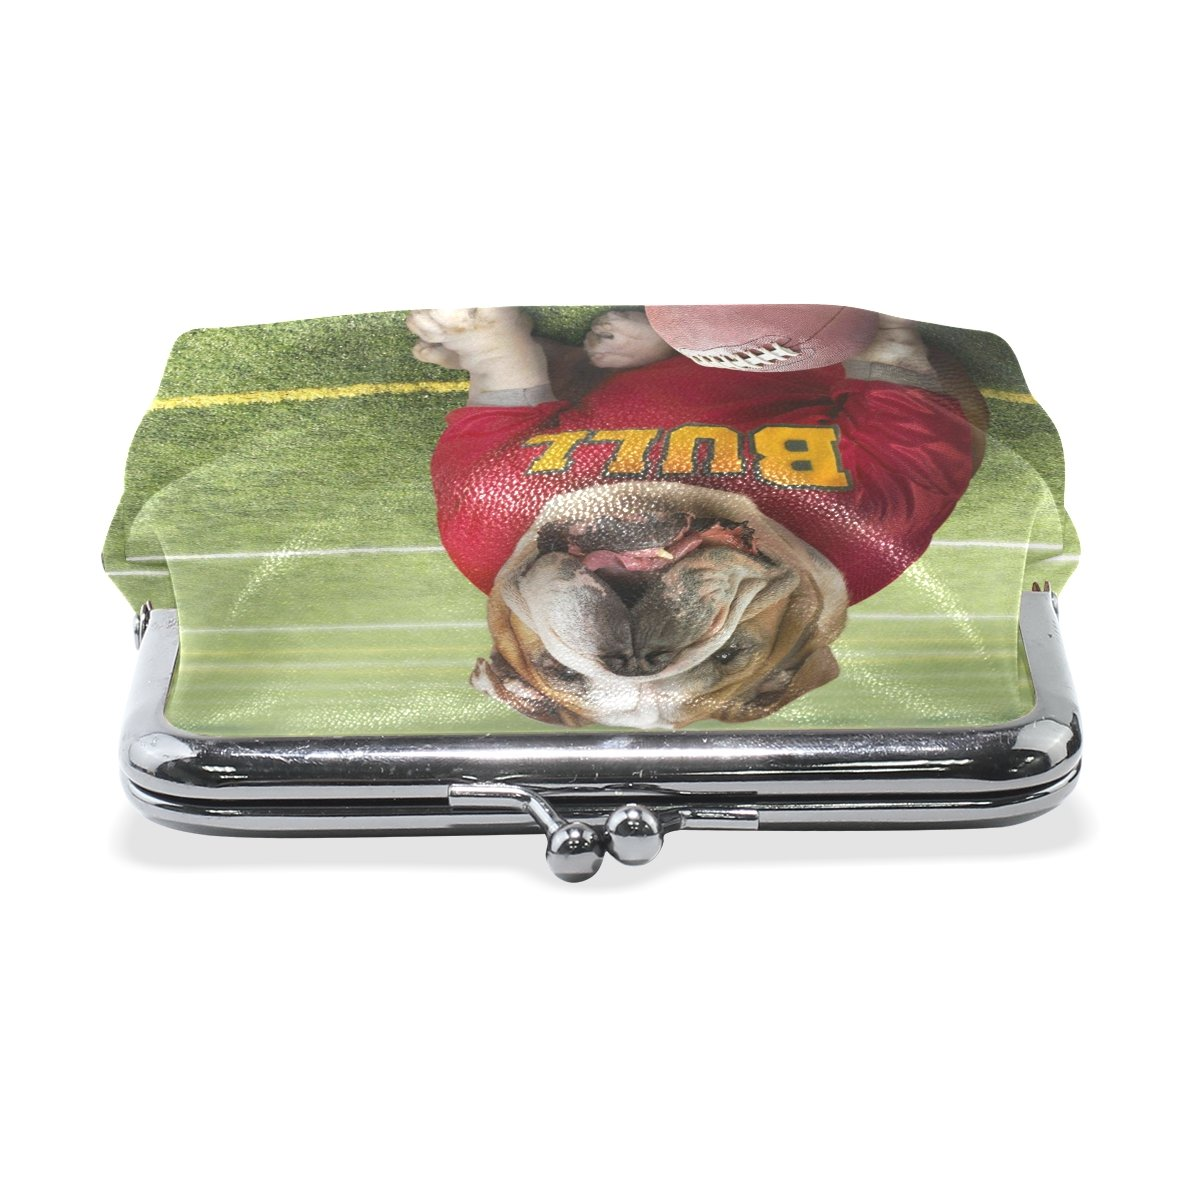 Sunlome Womens Clasp Coin Purse Cards Case Bull Dog American Football Small Wallet Buckle Clutch